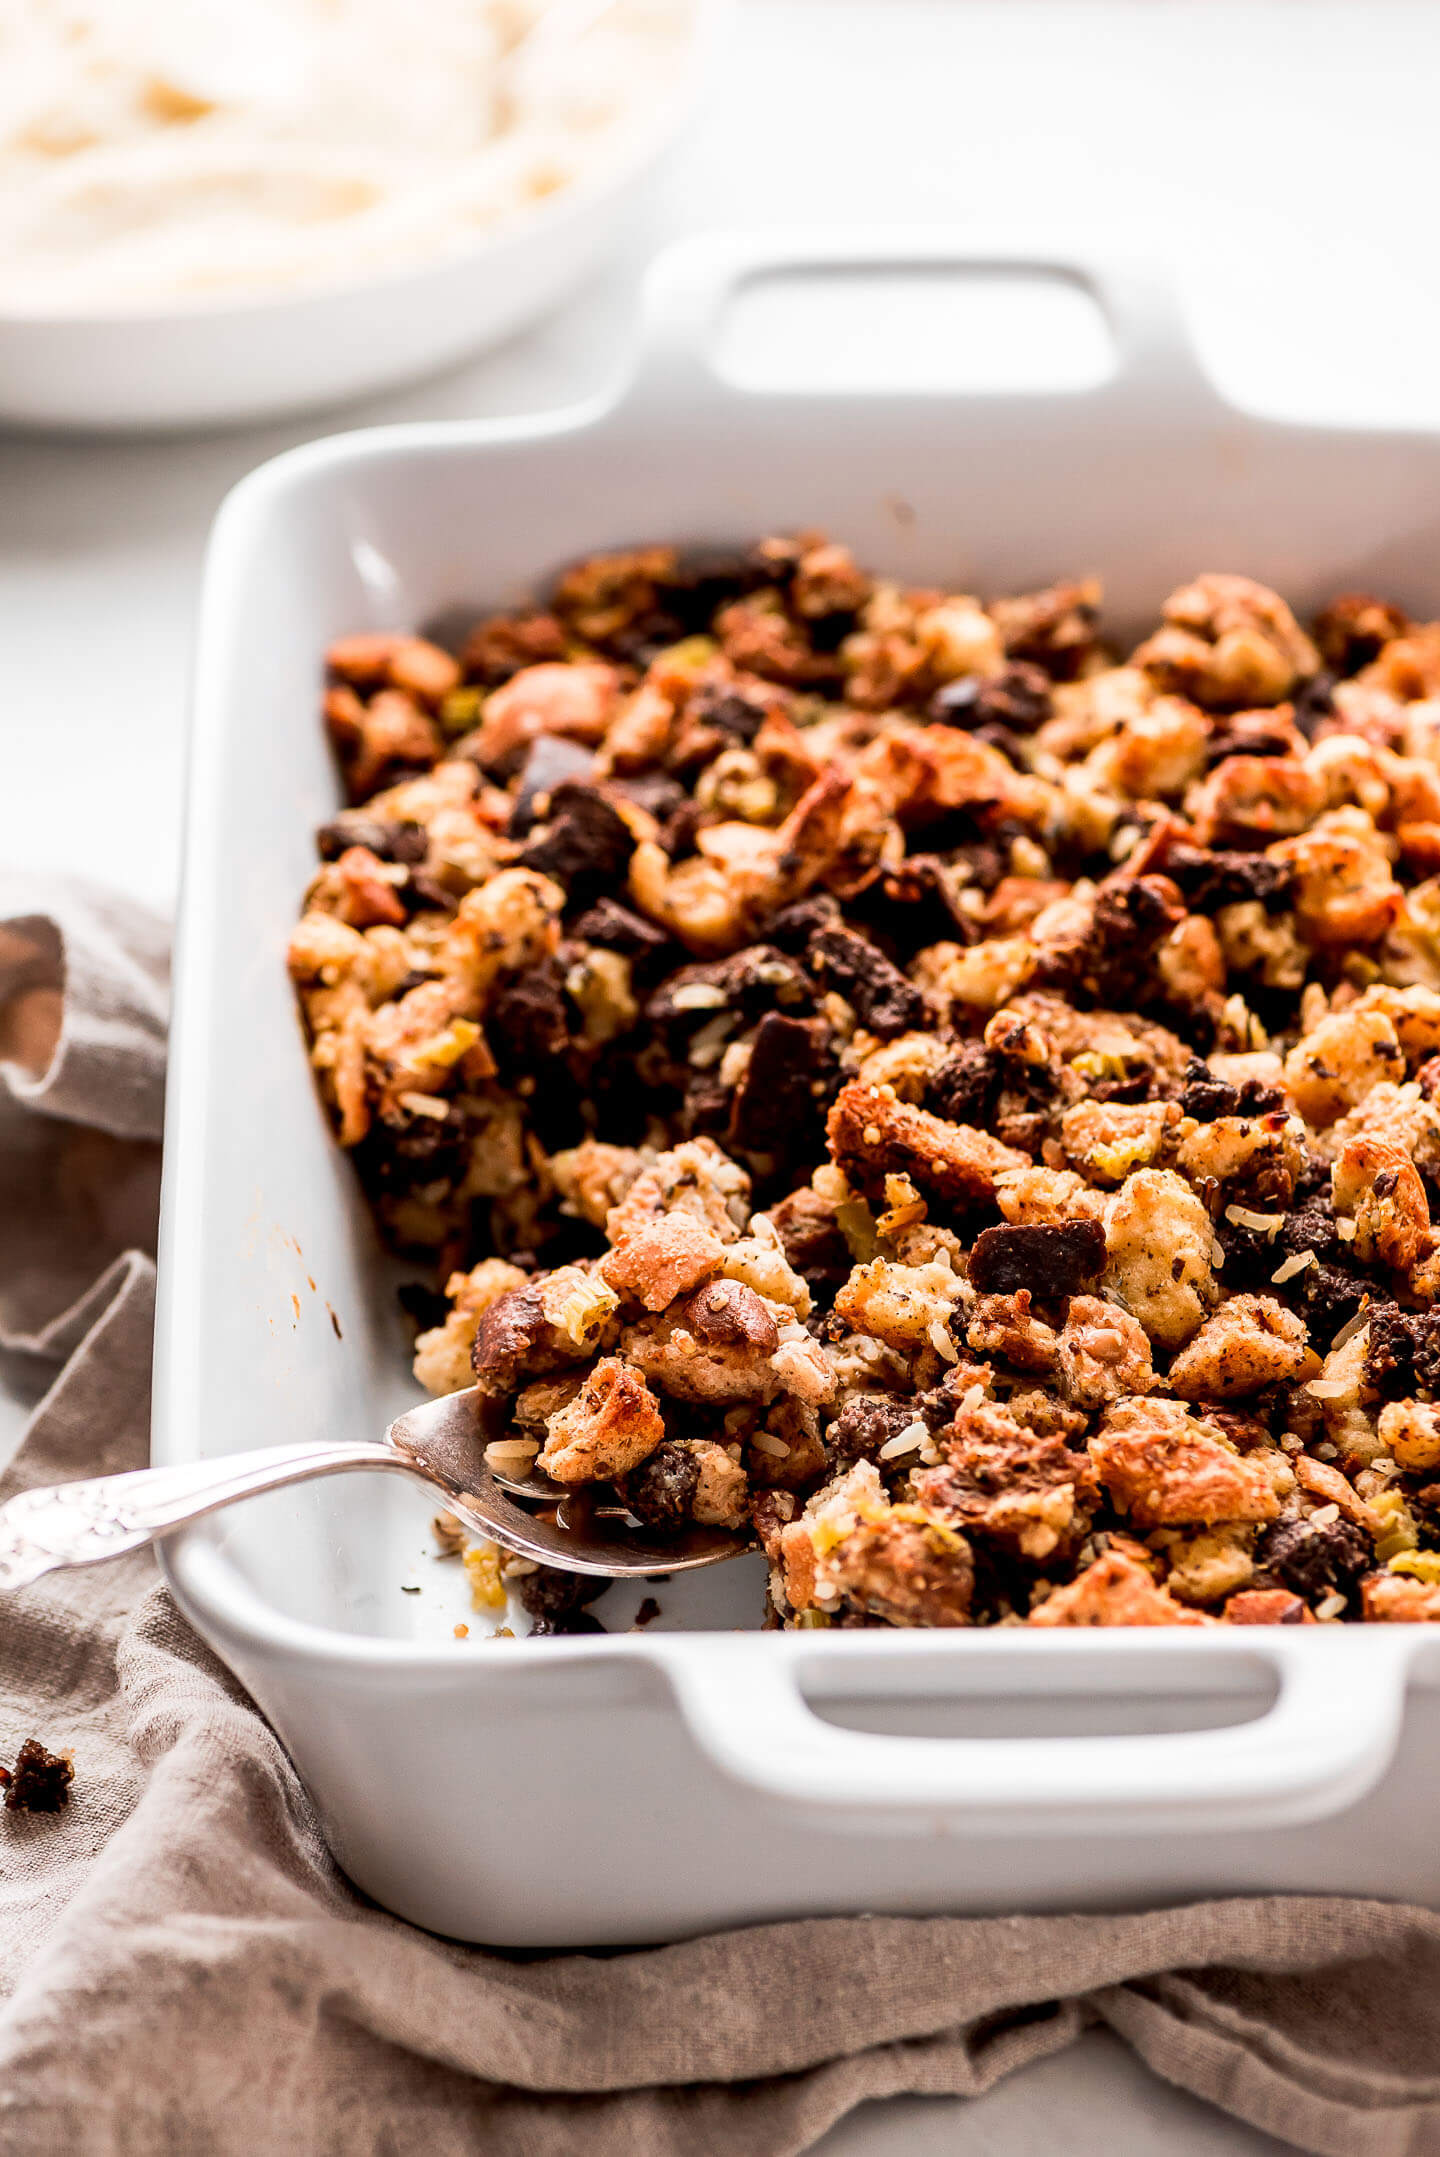 Scooping a spoonful of Turkey Stuffing out of a casserole dish.